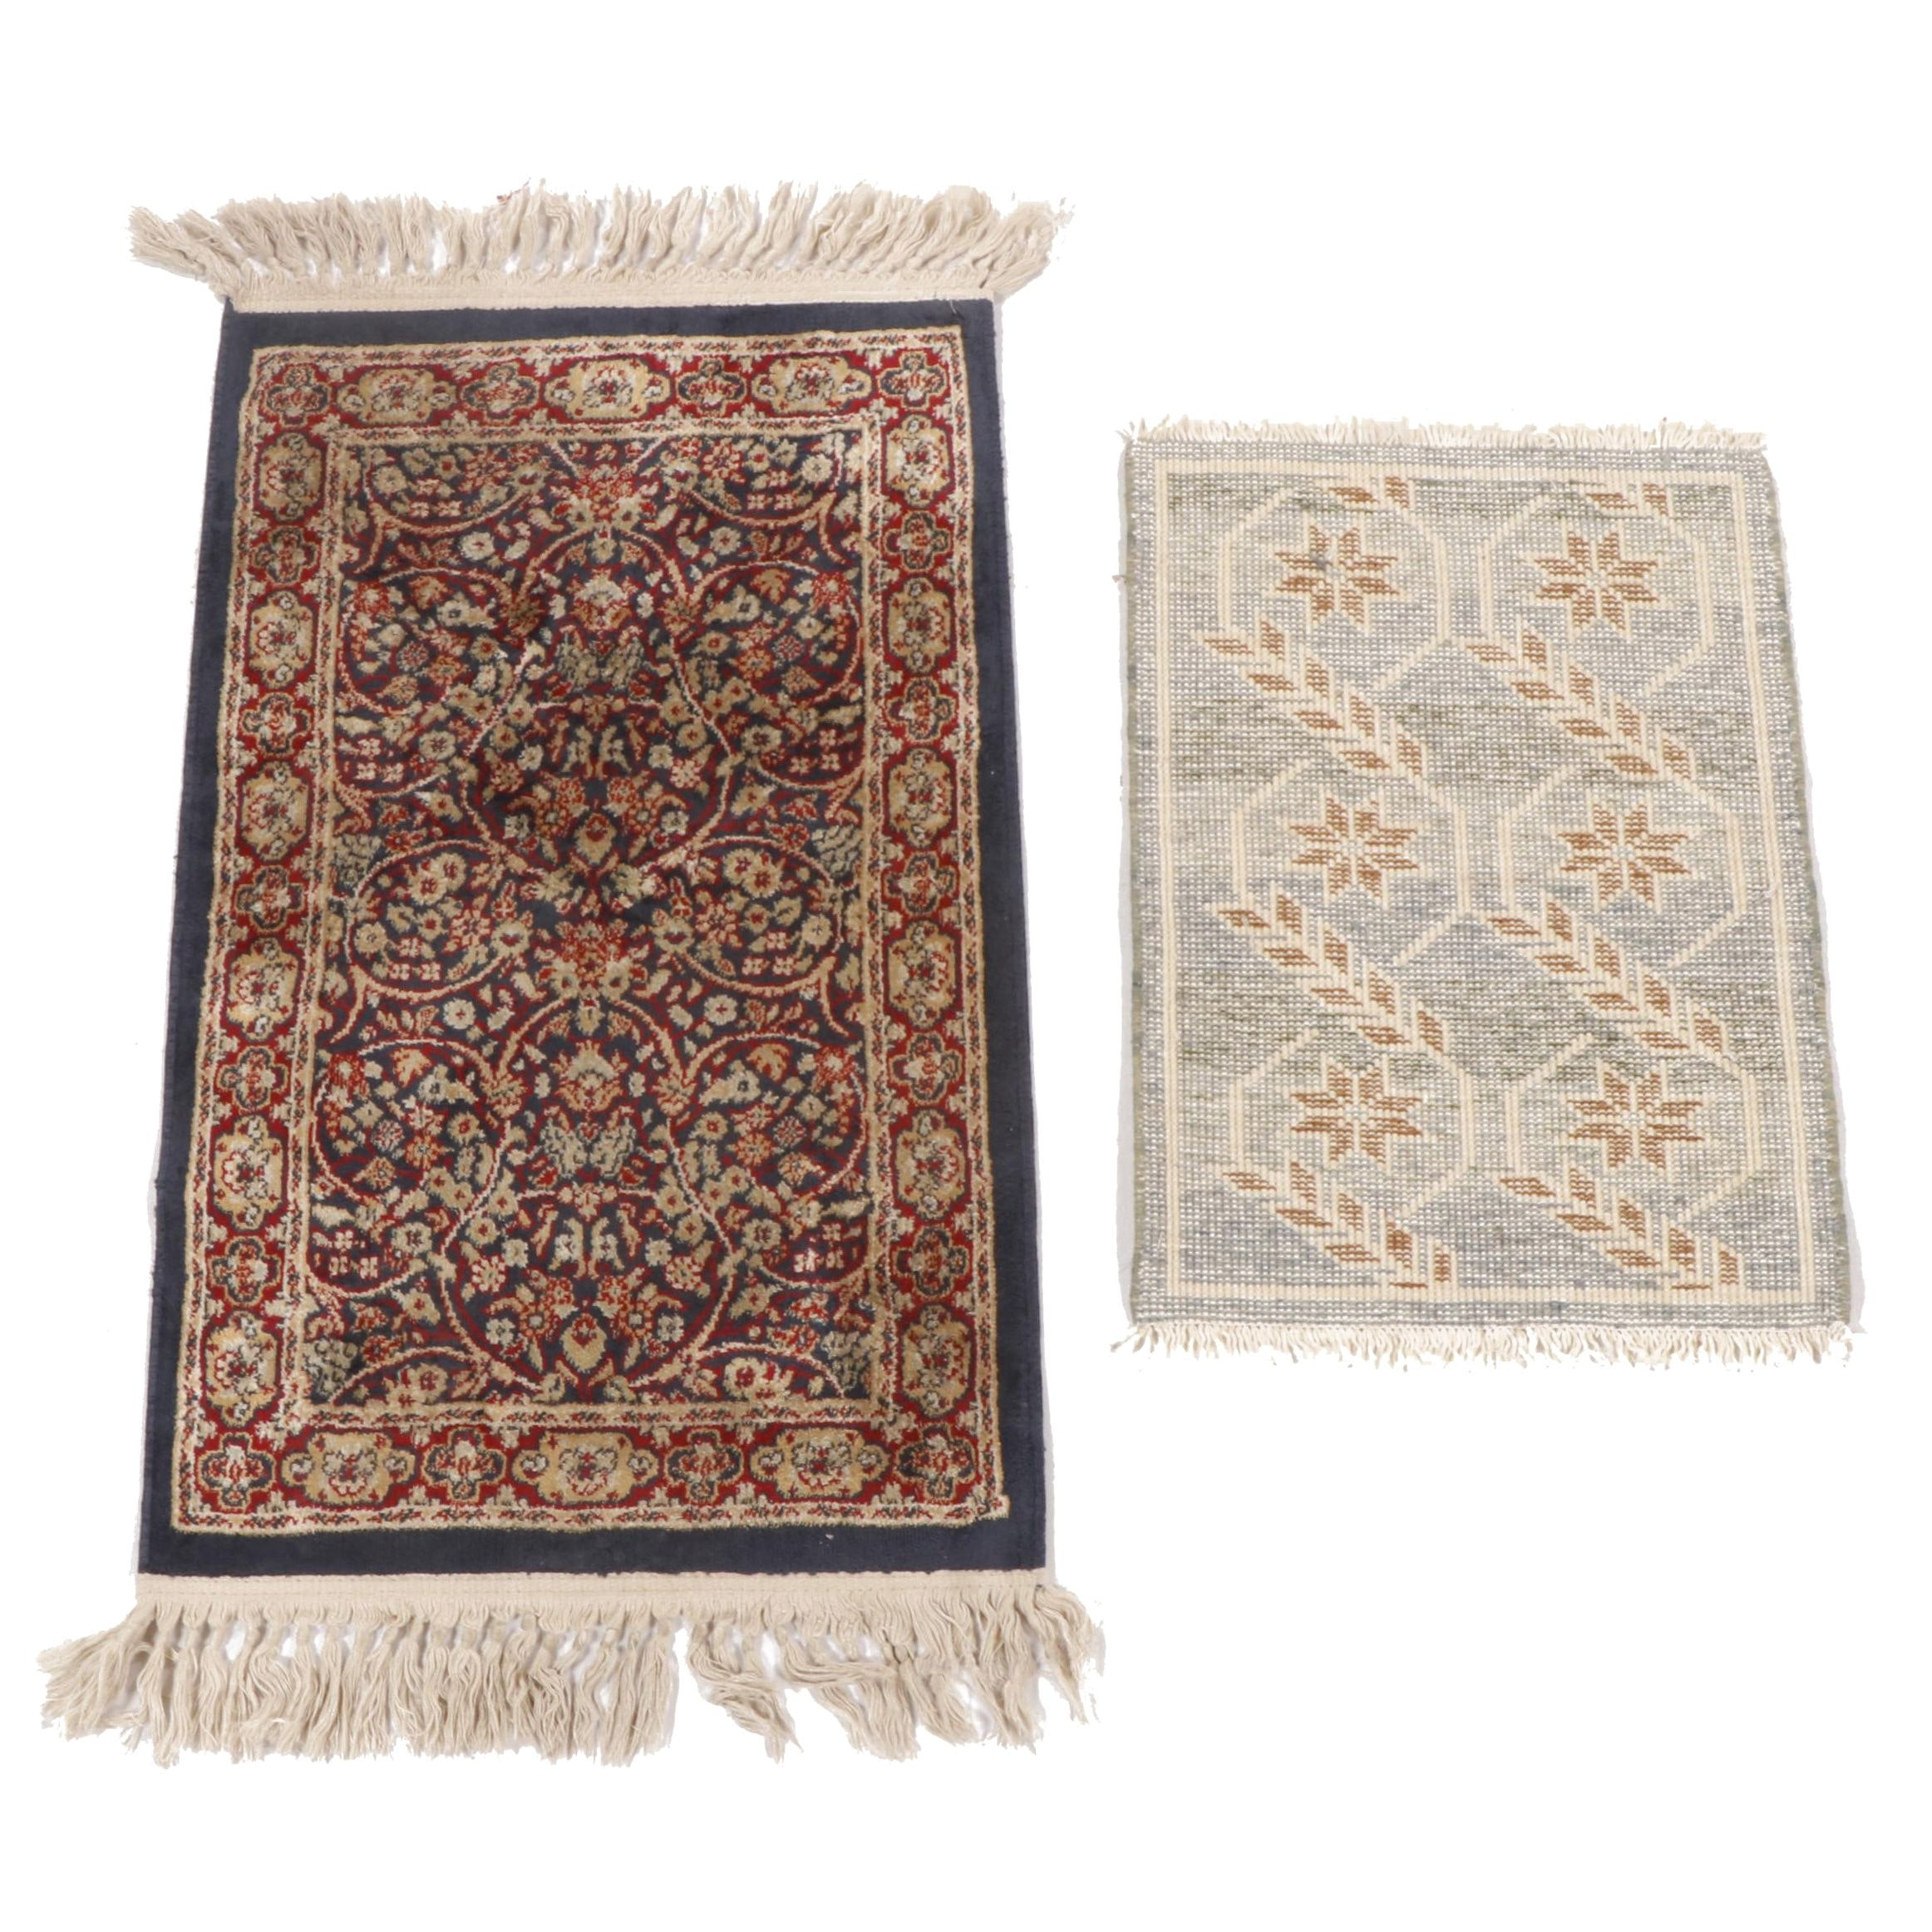 Machine Made Karastan and Hand-Knotted Indo-Persian Wool Accent Rugs